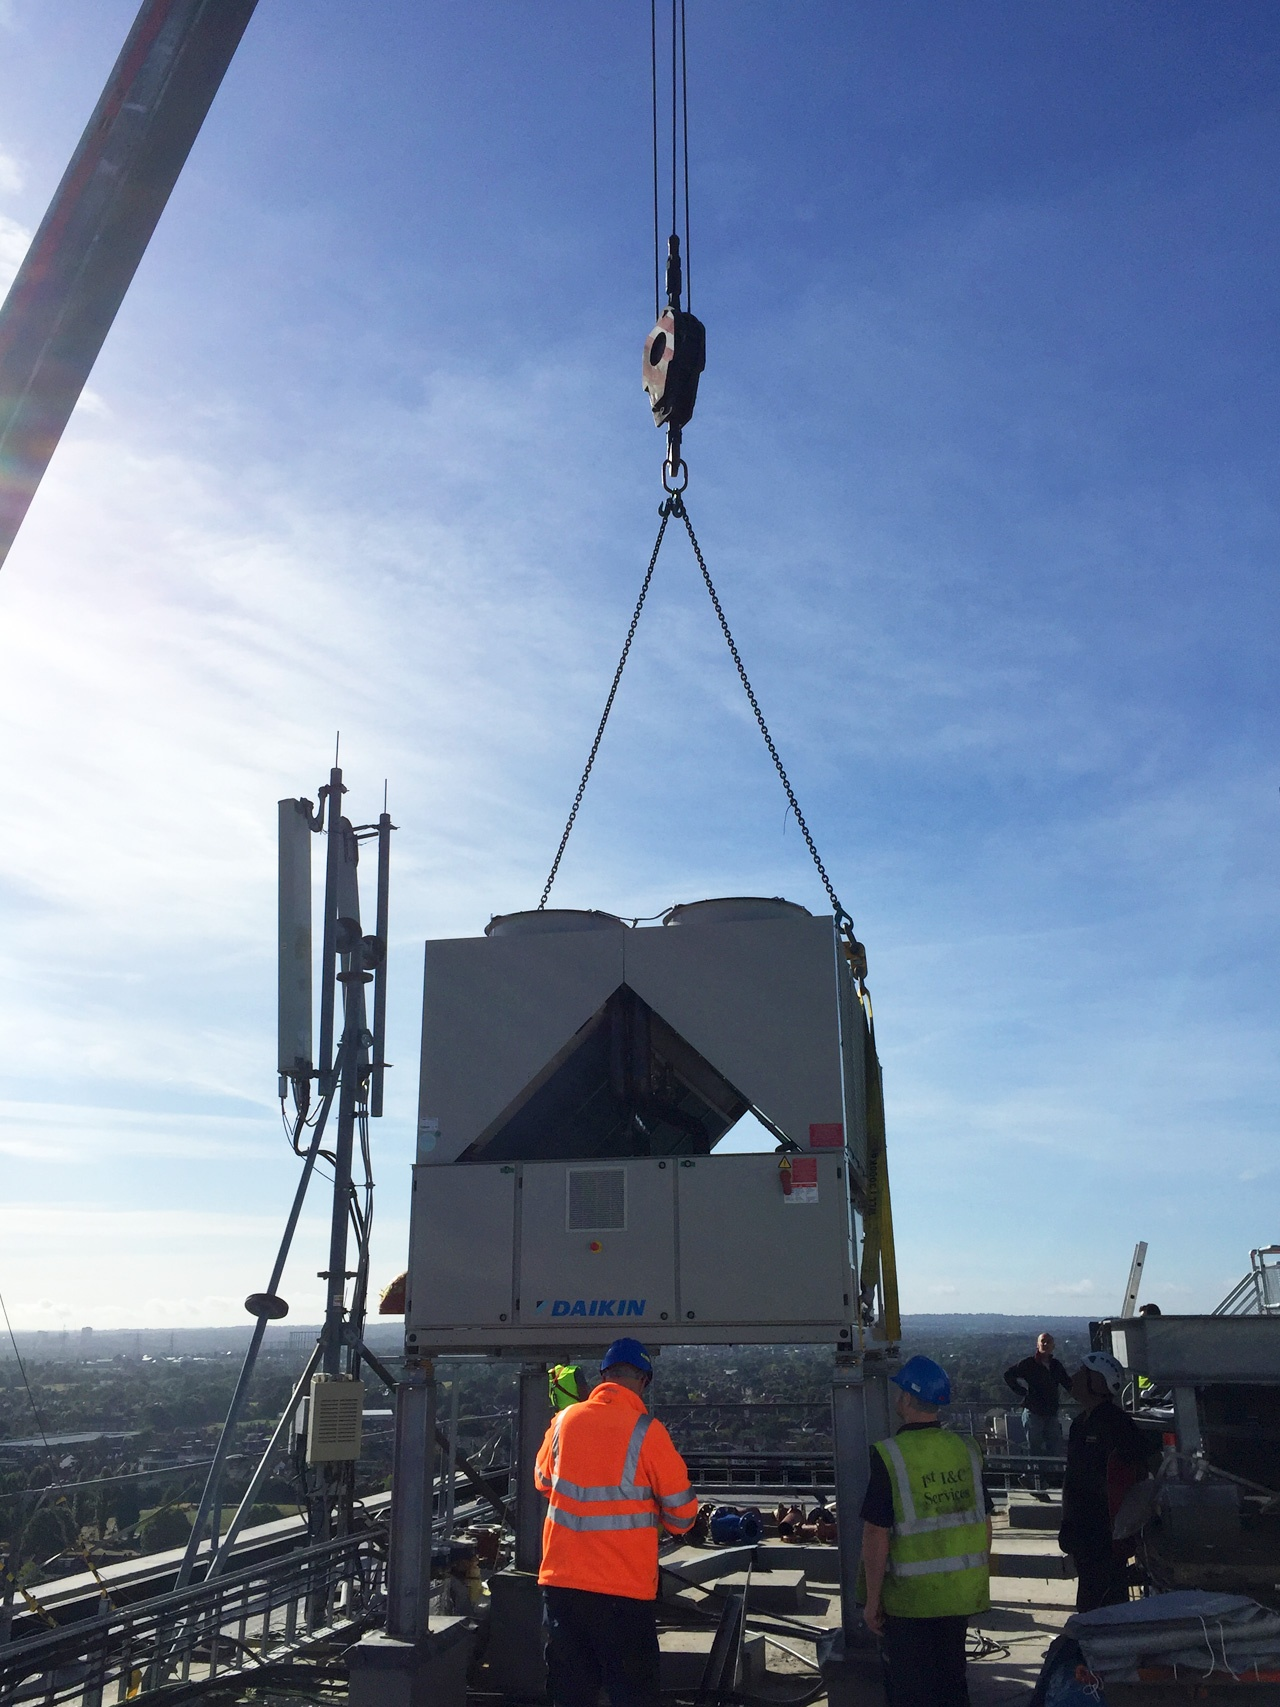 Pic of the 1st Industrial team performing a contract lift to a roof location